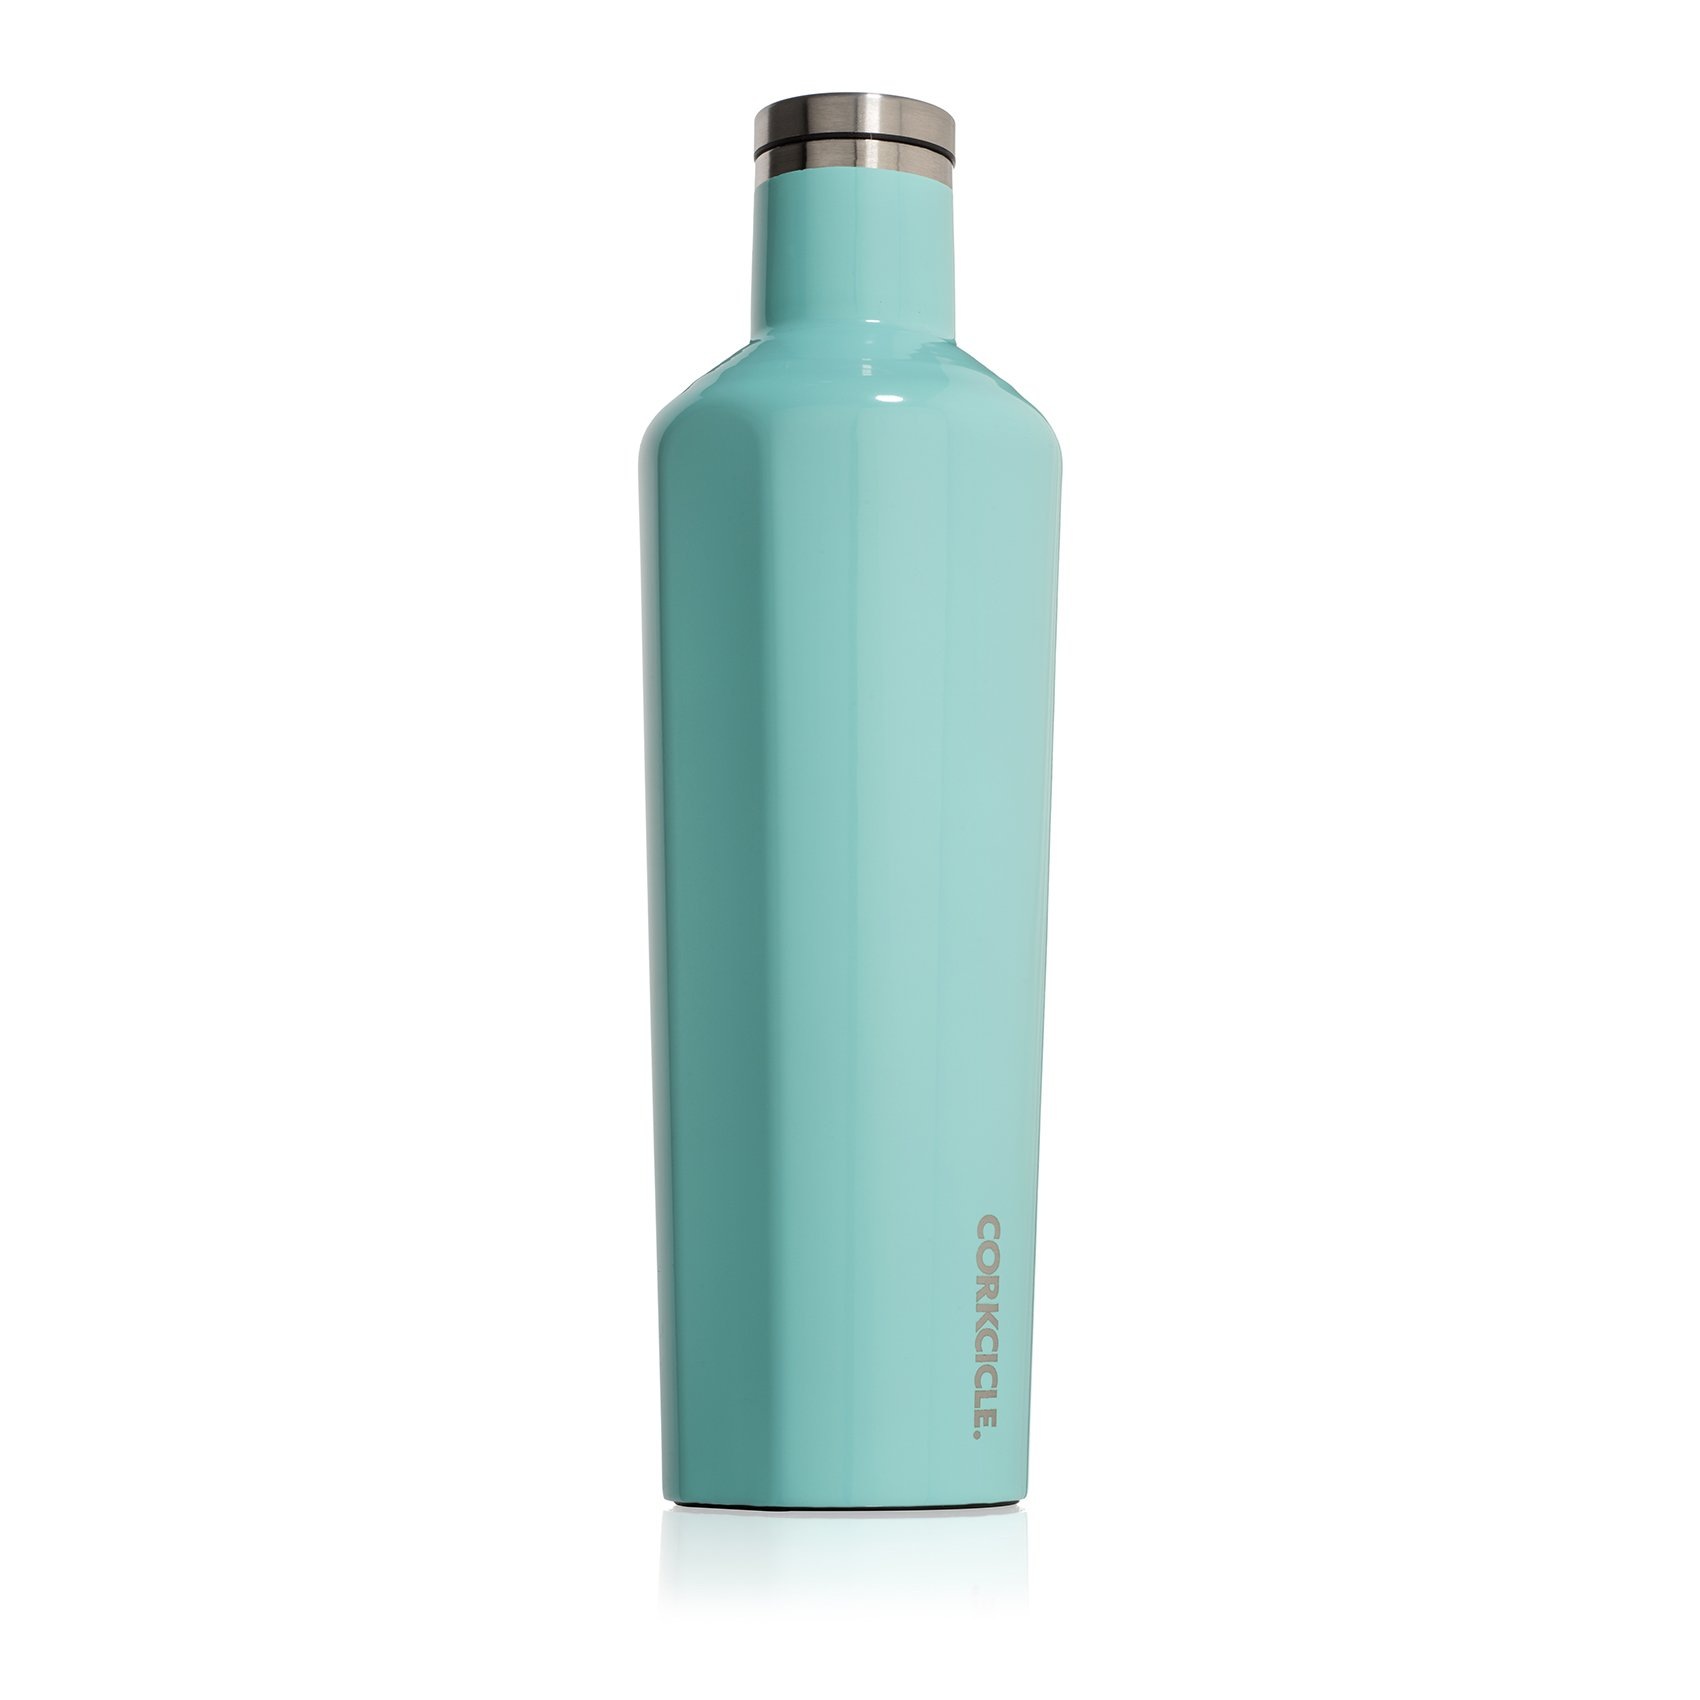 Corkcicle Canteen Classic Collection-Water Bottle & Thermos-Triple Insulated Shatterproof Stainless Steel, 25 oz, Gloss Turquoise